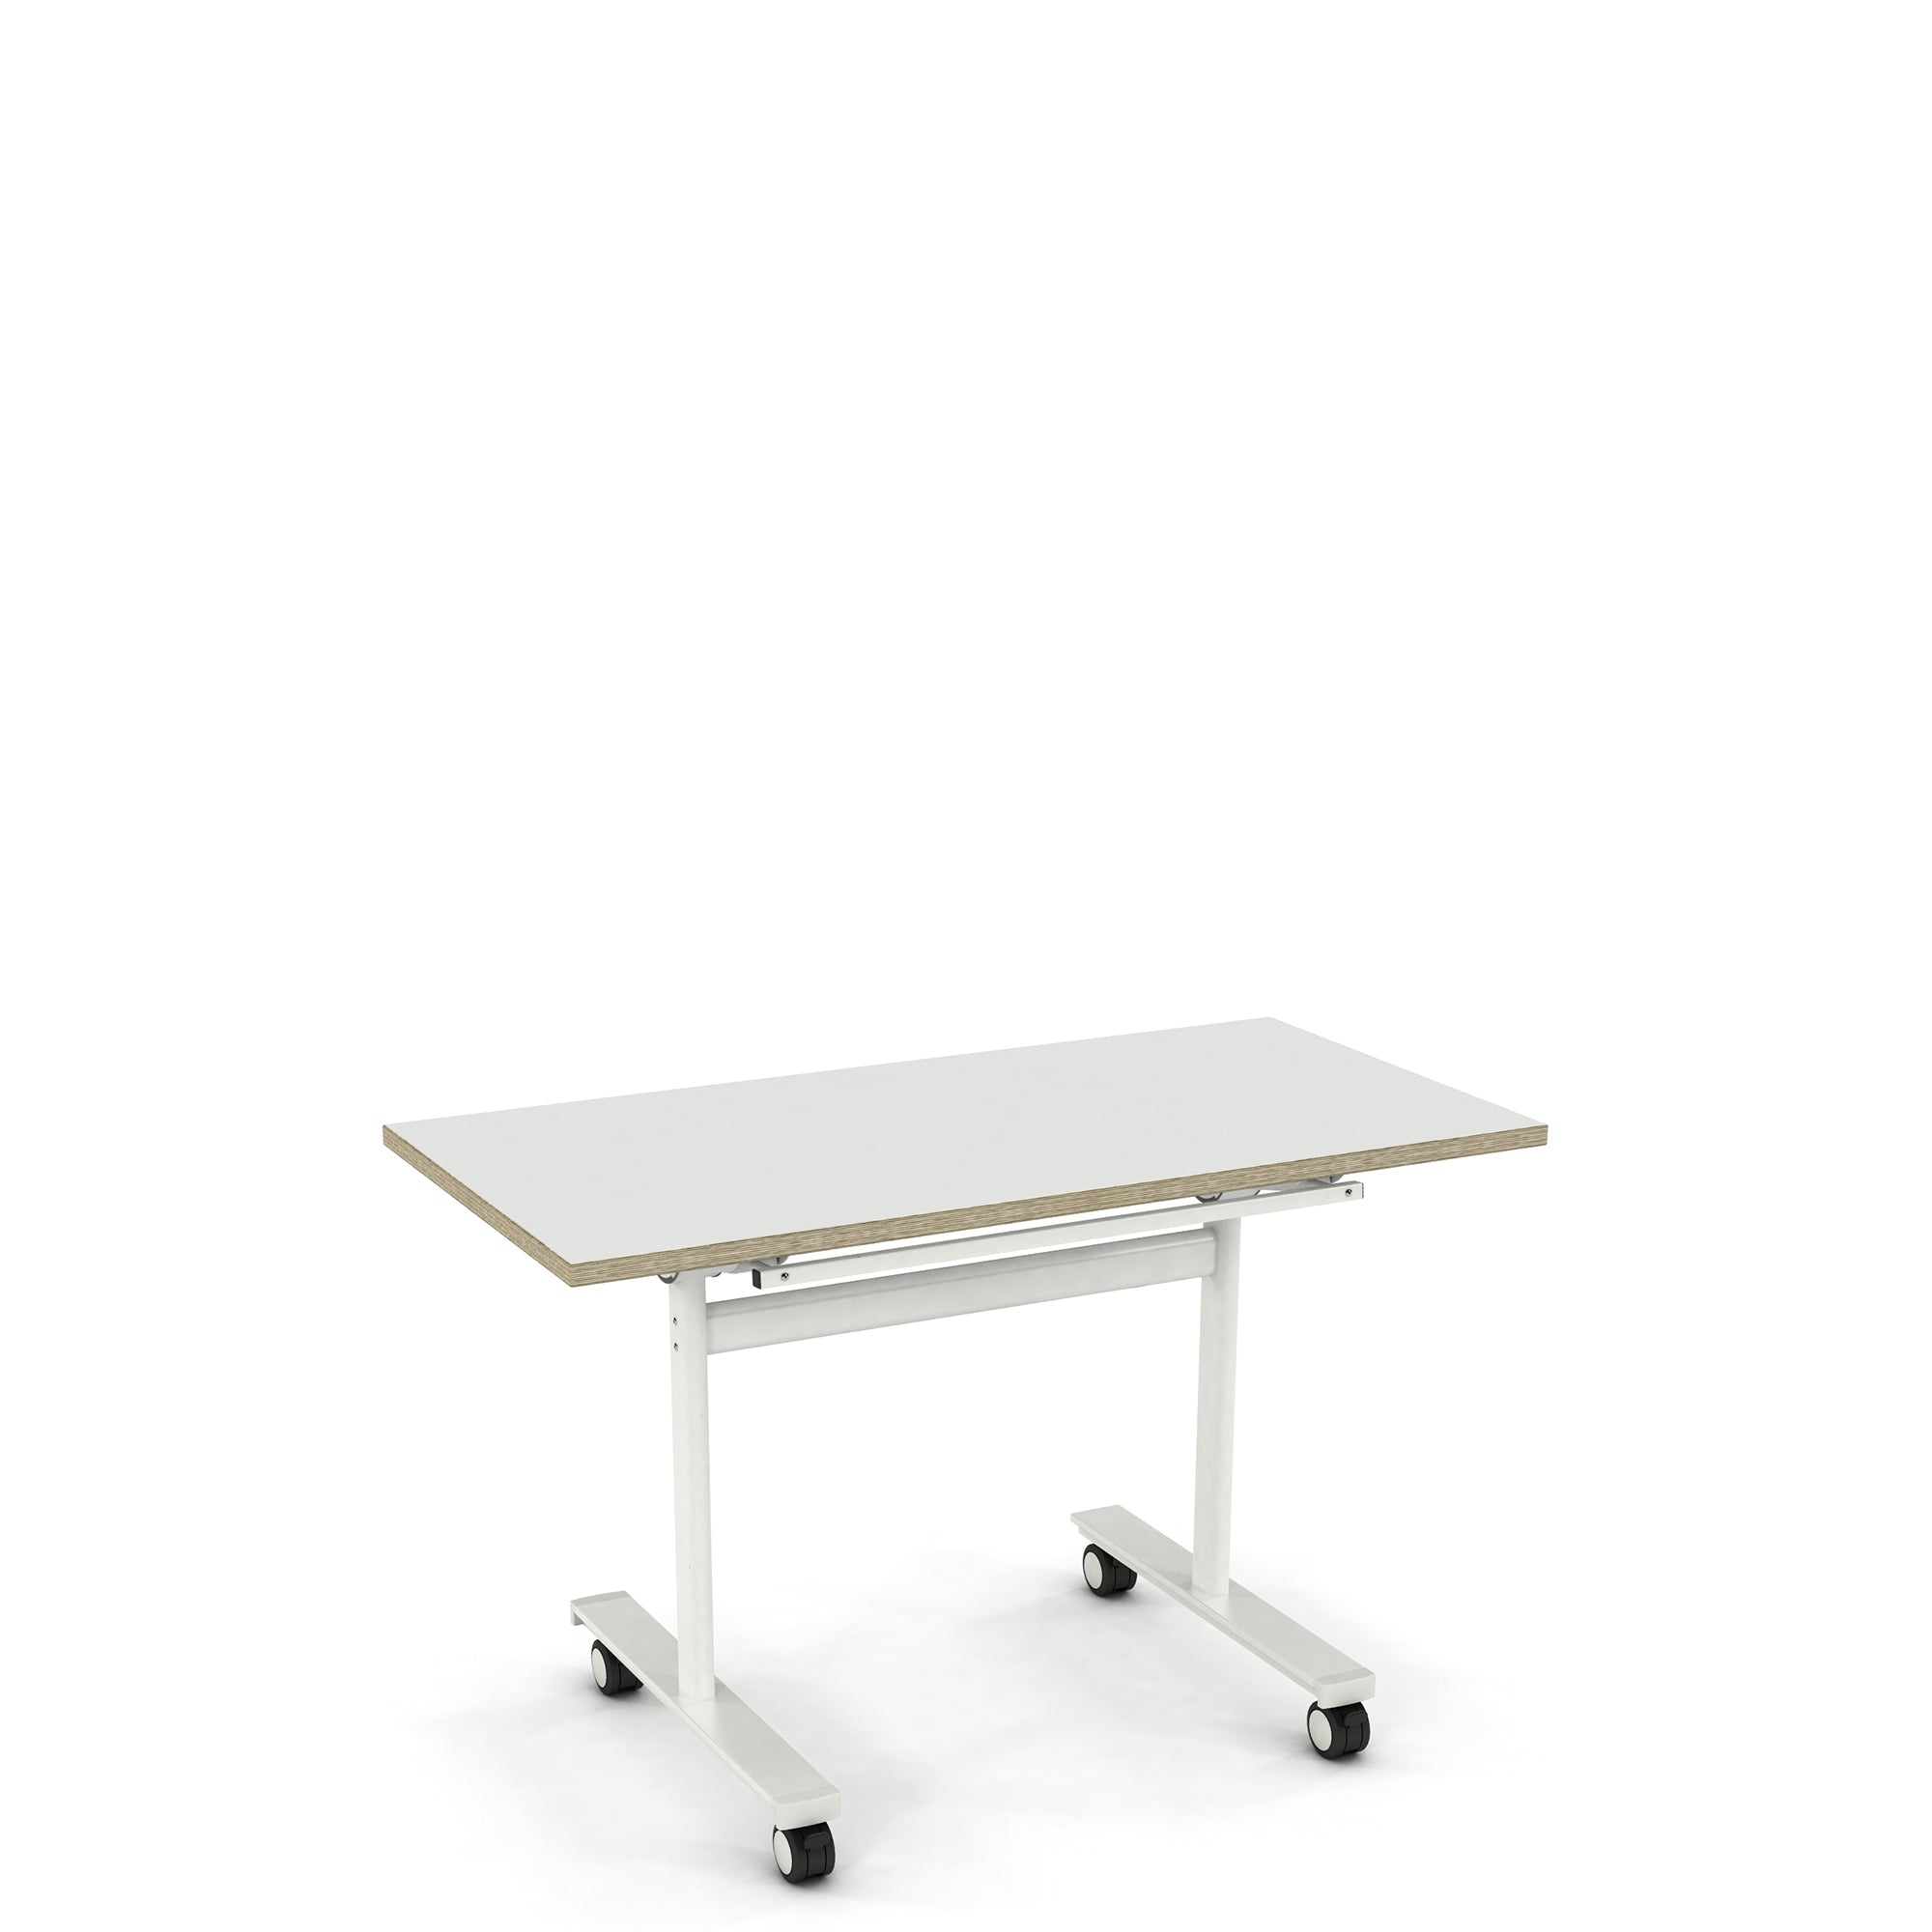 KI Europe Office Meet4 Flip Top Nesting Table Traffic White and Ply Edge with White Frame